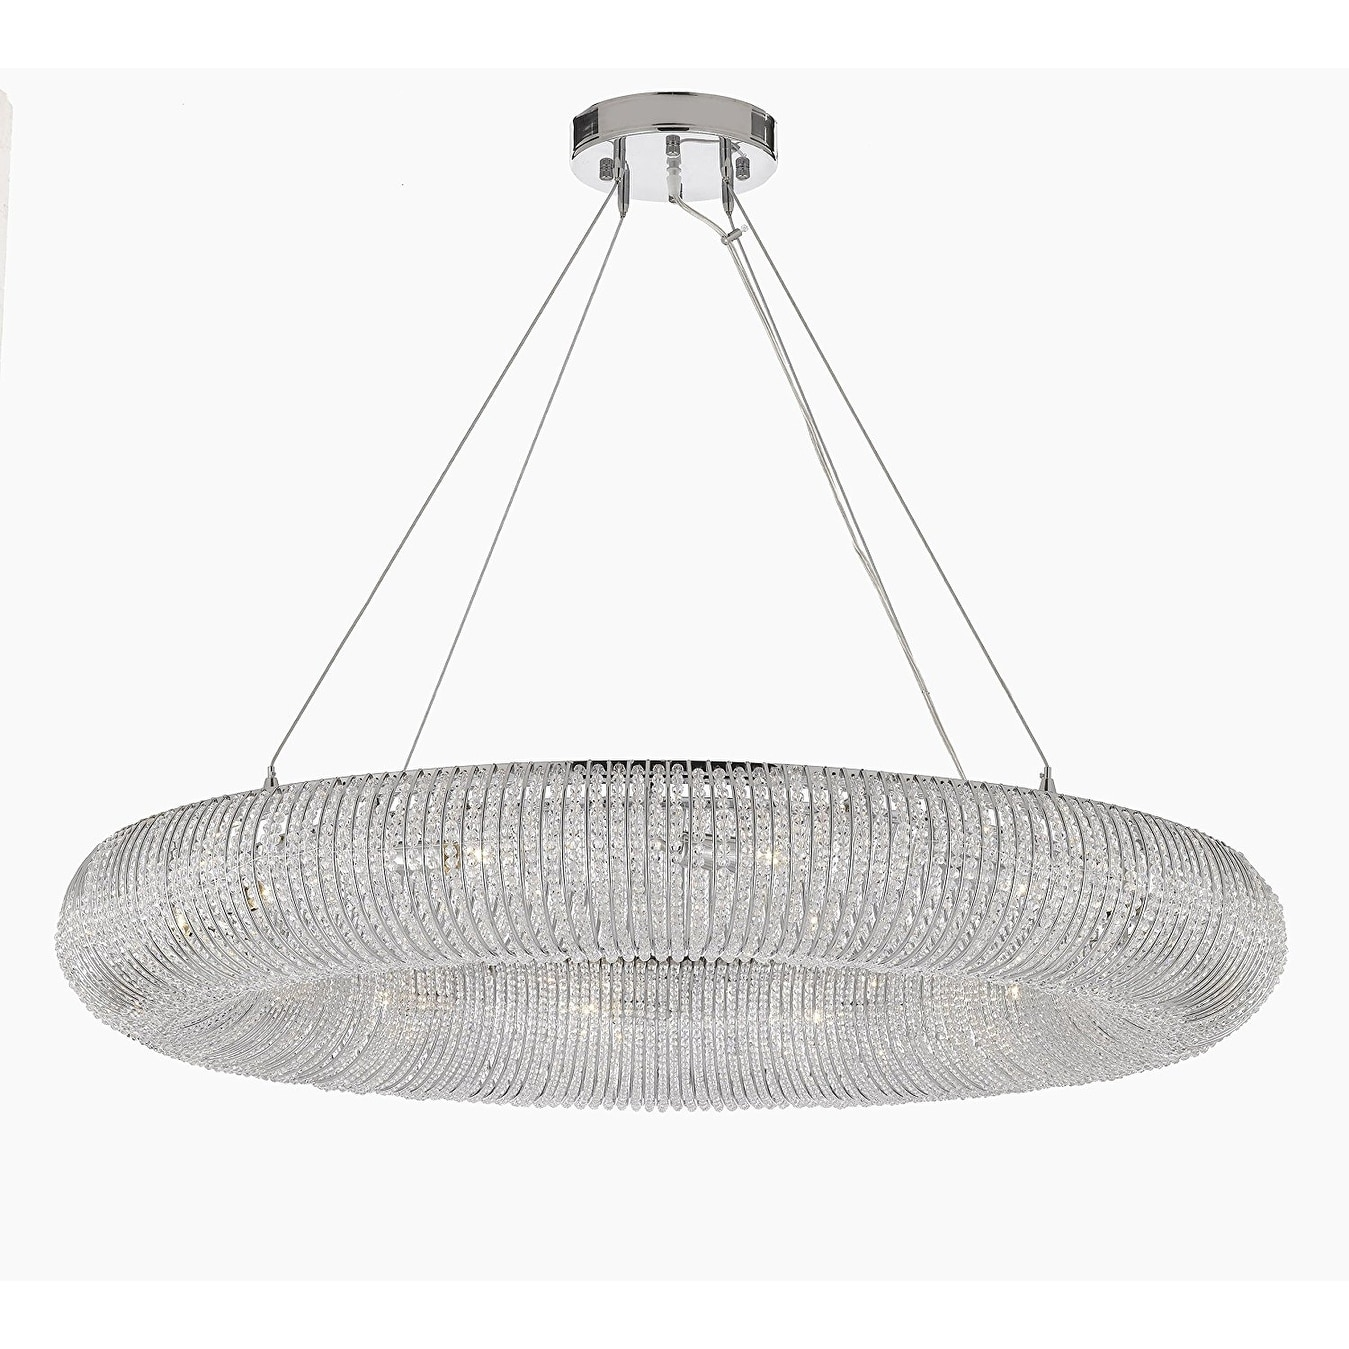 Gallery lighting halo crystal polished chrome finish 41 inch gallery lighting halo crystal polished chrome finish 41 inch floating orb chandelier free shipping today overstock 19615236 arubaitofo Gallery